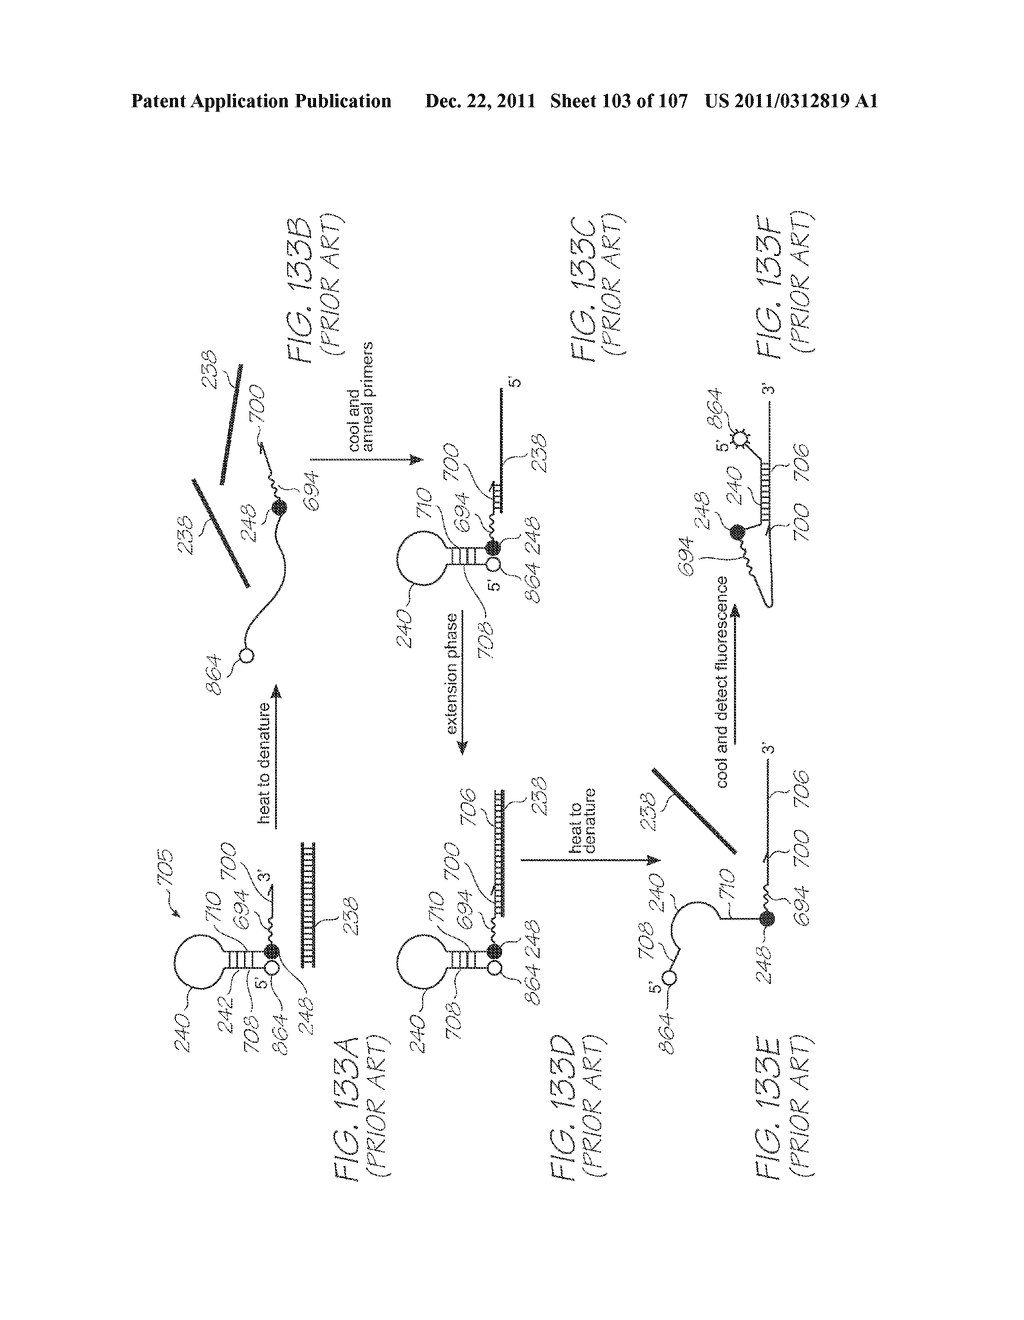 LOC DEVICE FOR DETECTING TARGET NUCLEIC ACID SEQUENCES USING     ELECTROCHEMILUMINESCENCE OF A LUMINOPHORE IN THE PRESENCE OF AN     ELECTROCHEMICAL COREACTANT - diagram, schematic, and image 104